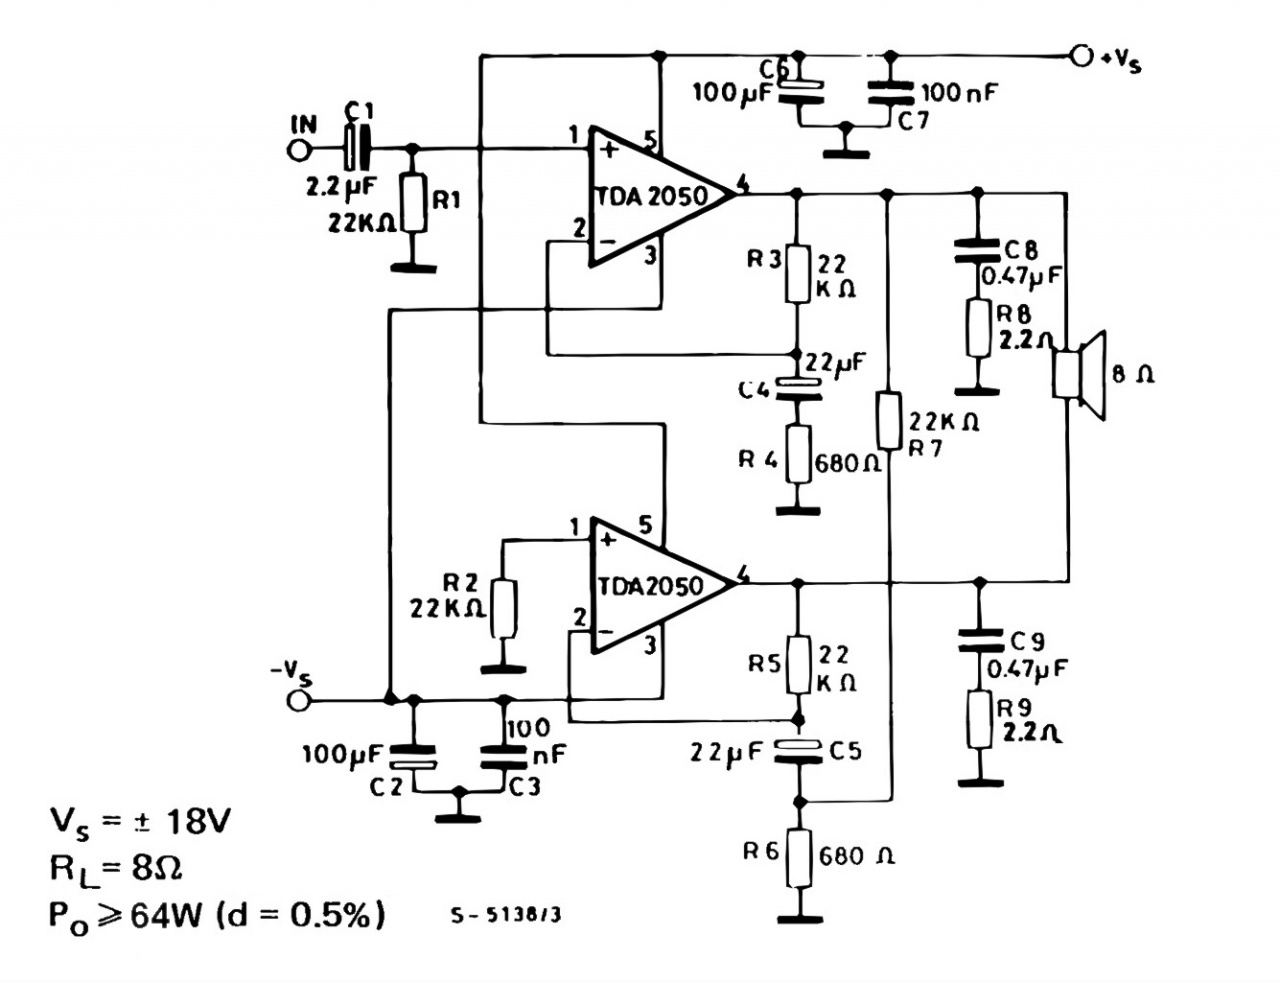 Tda2050 Amplifier Circuit Diagrams Daily Update Wiring Diagram Electronics Circuits Pdf 2 X 32 Watts Stereo Electronic And Bridge